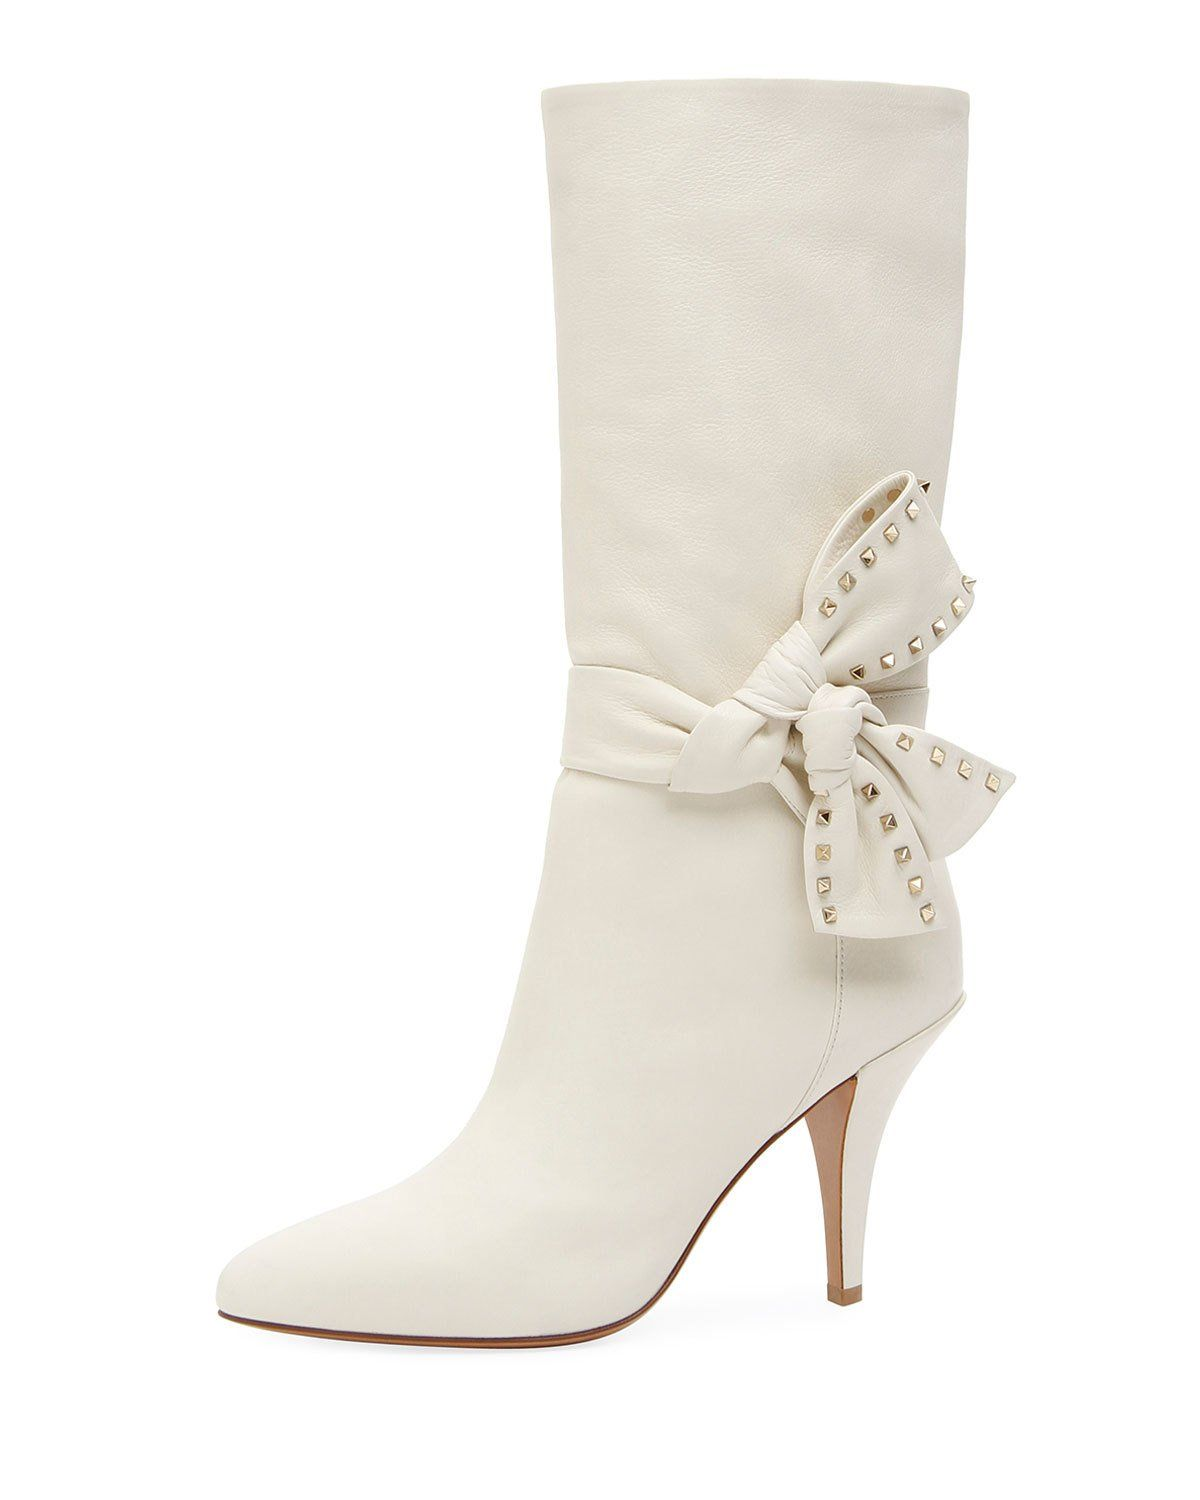 ValentinoSide Bow Leather Booties 2NyFu7W7